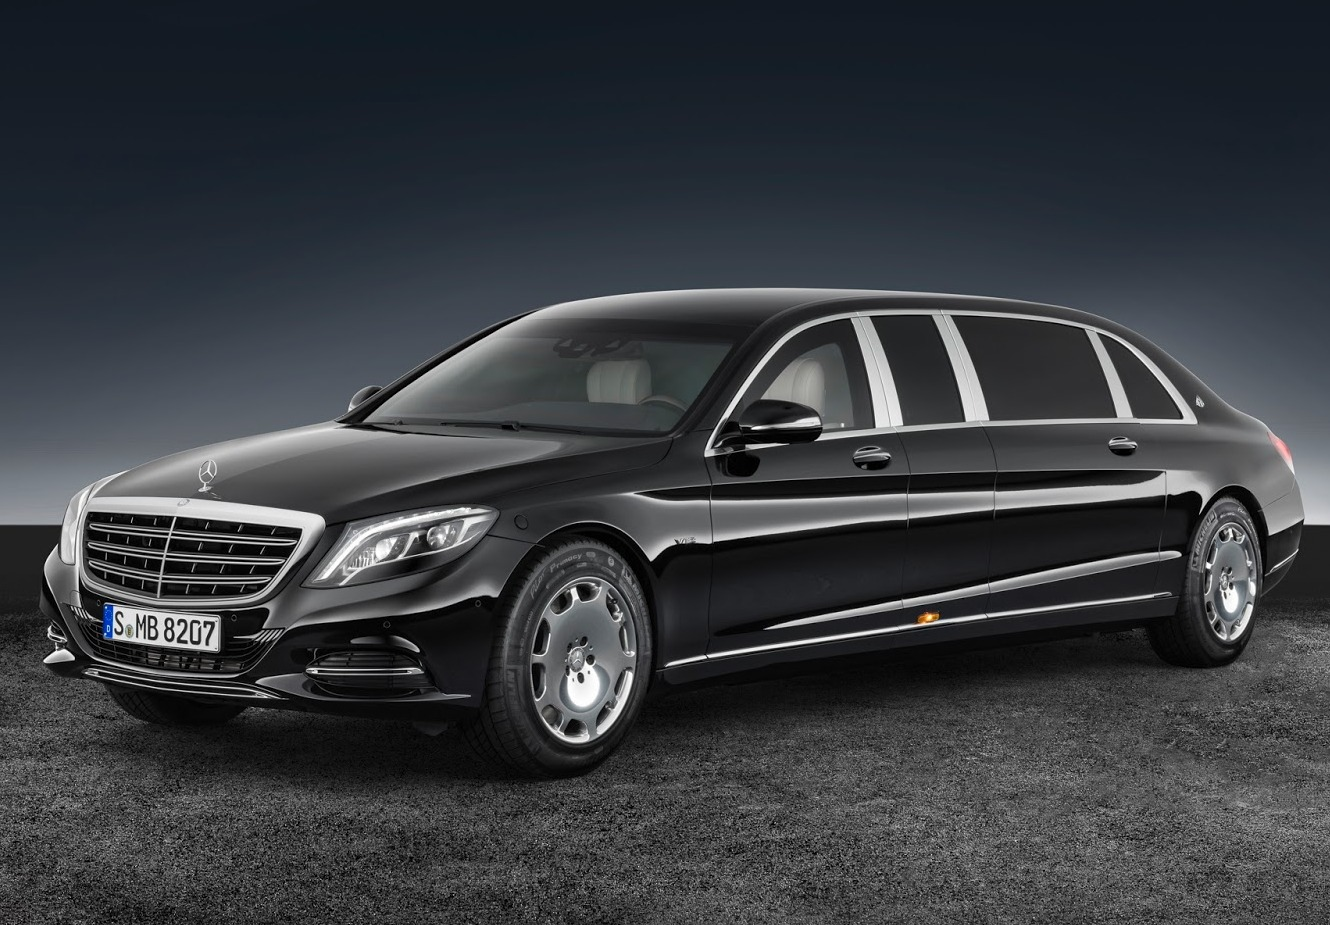 The next best thing to a luxury tank - An armored Maybach S600 Pullman -